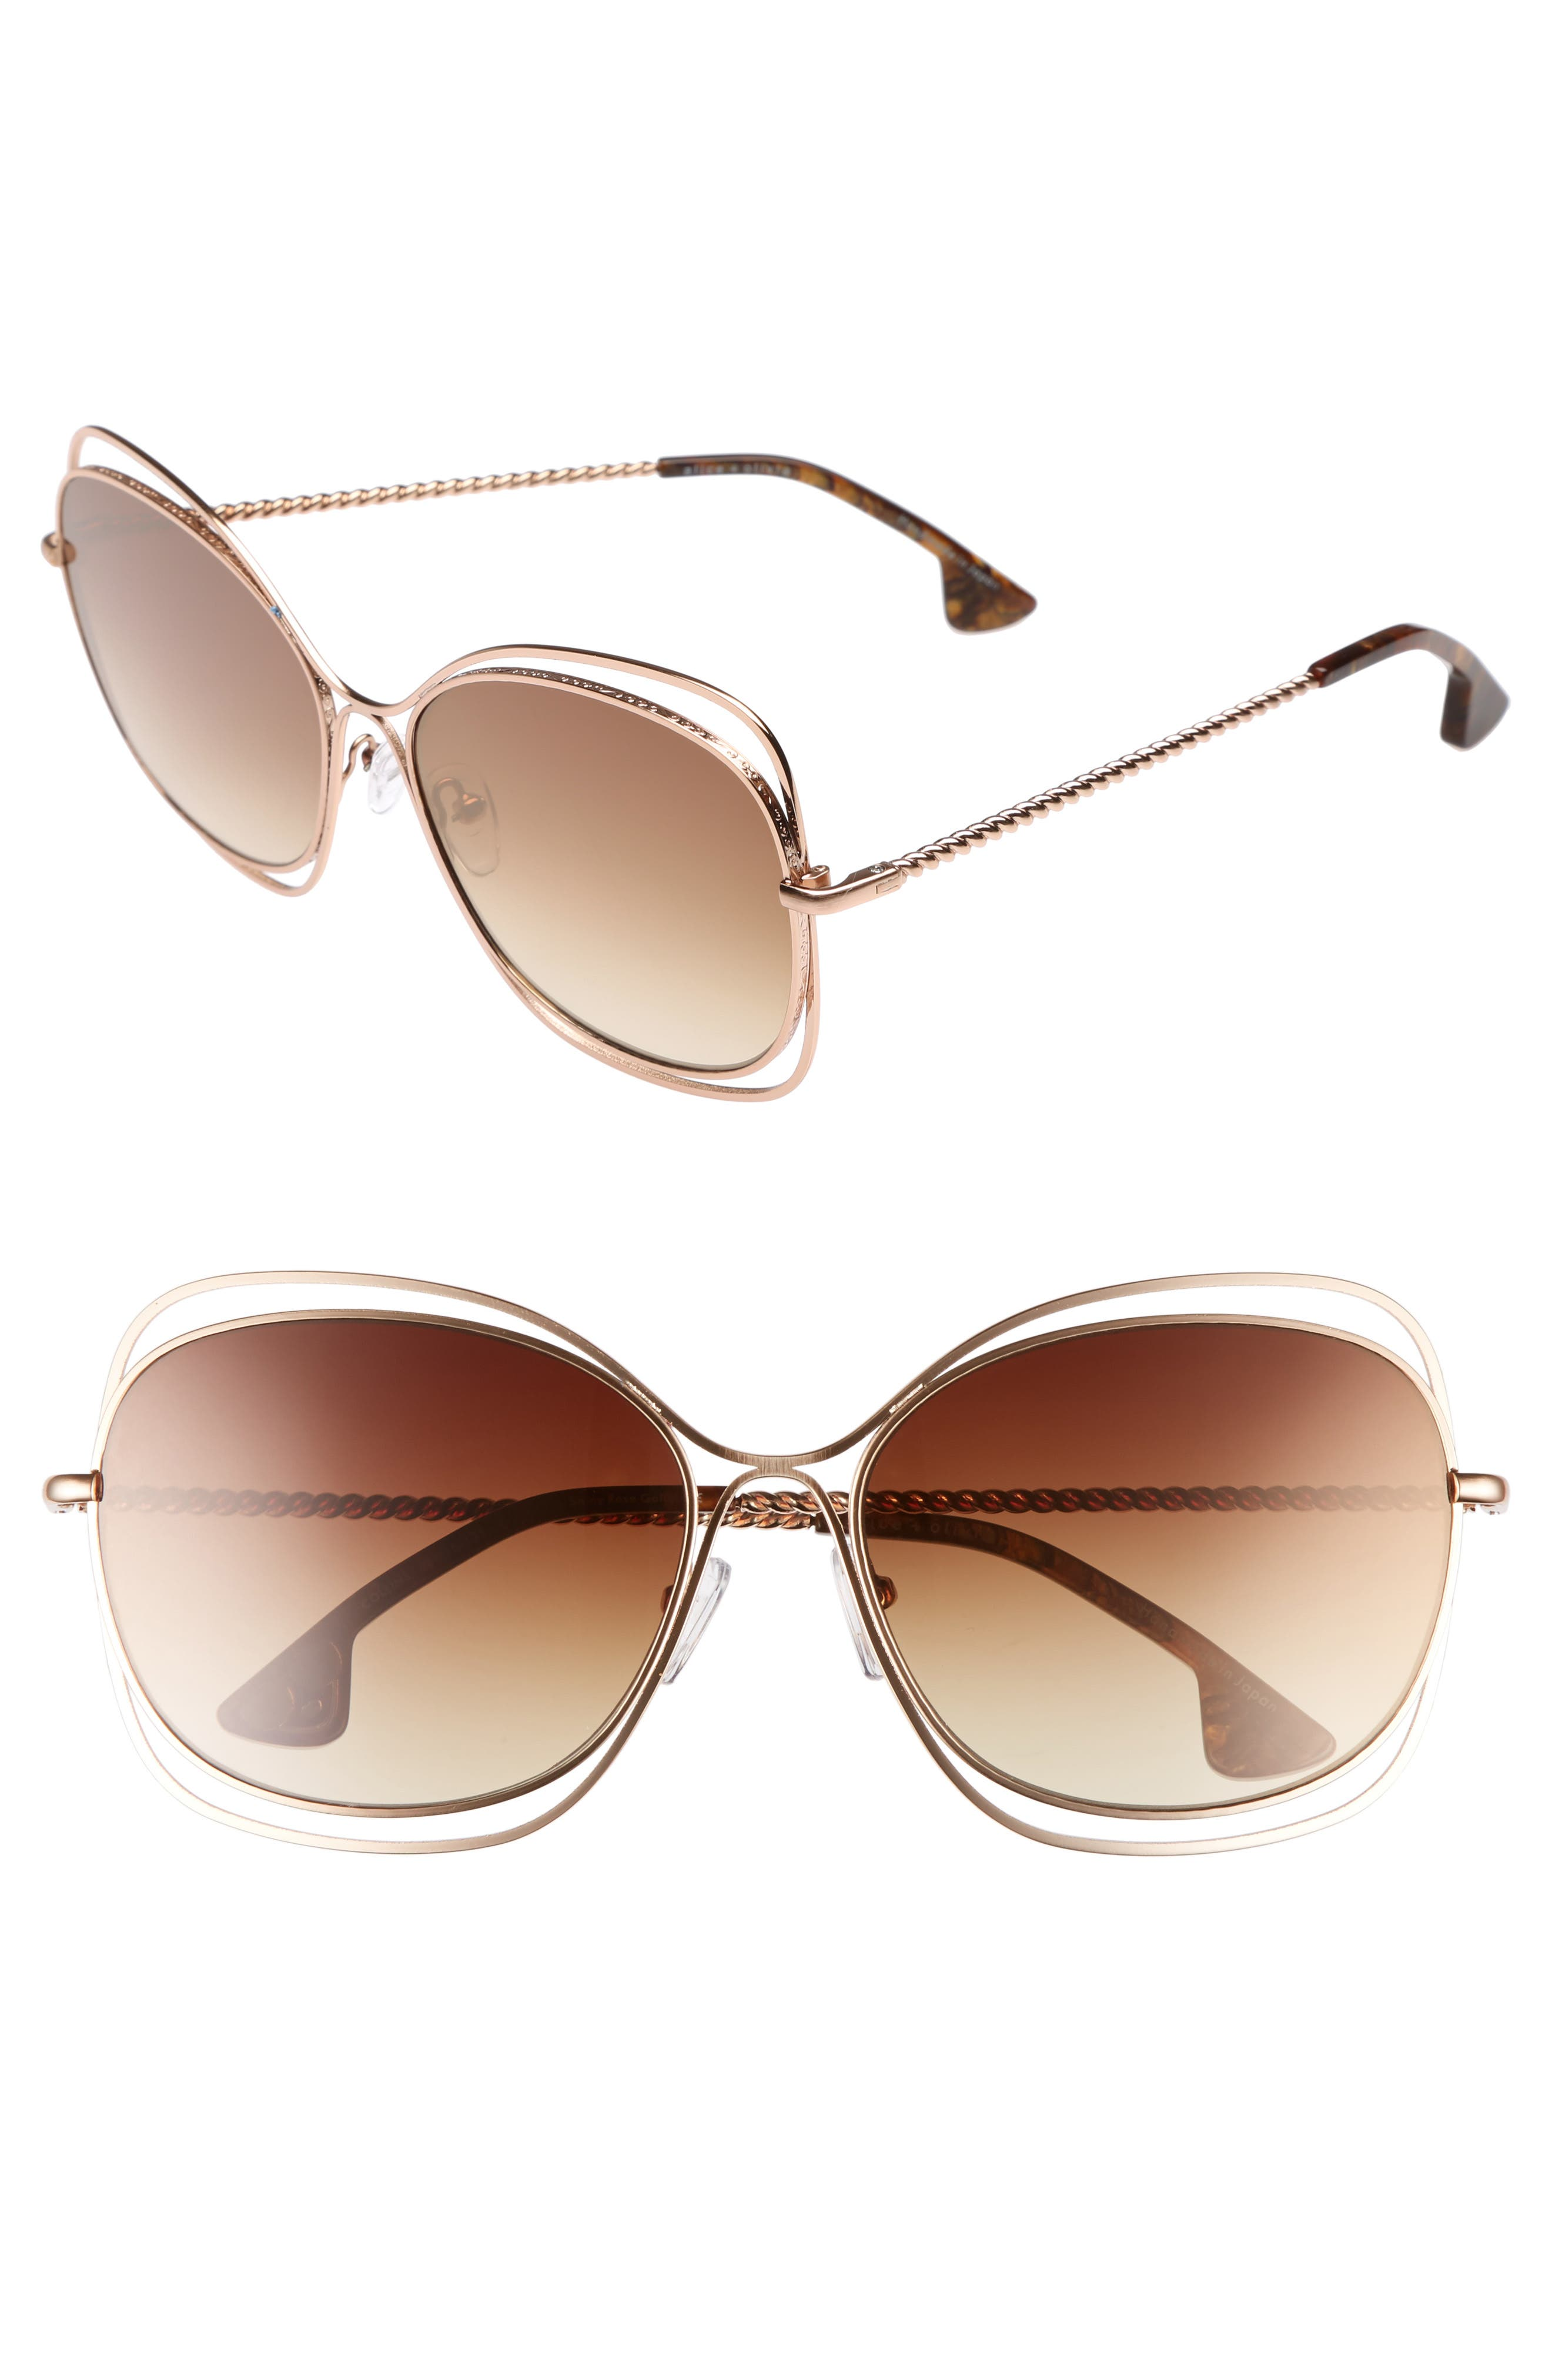 Collins 60mm Butterfly Sunglasses,                         Main,                         color, 220